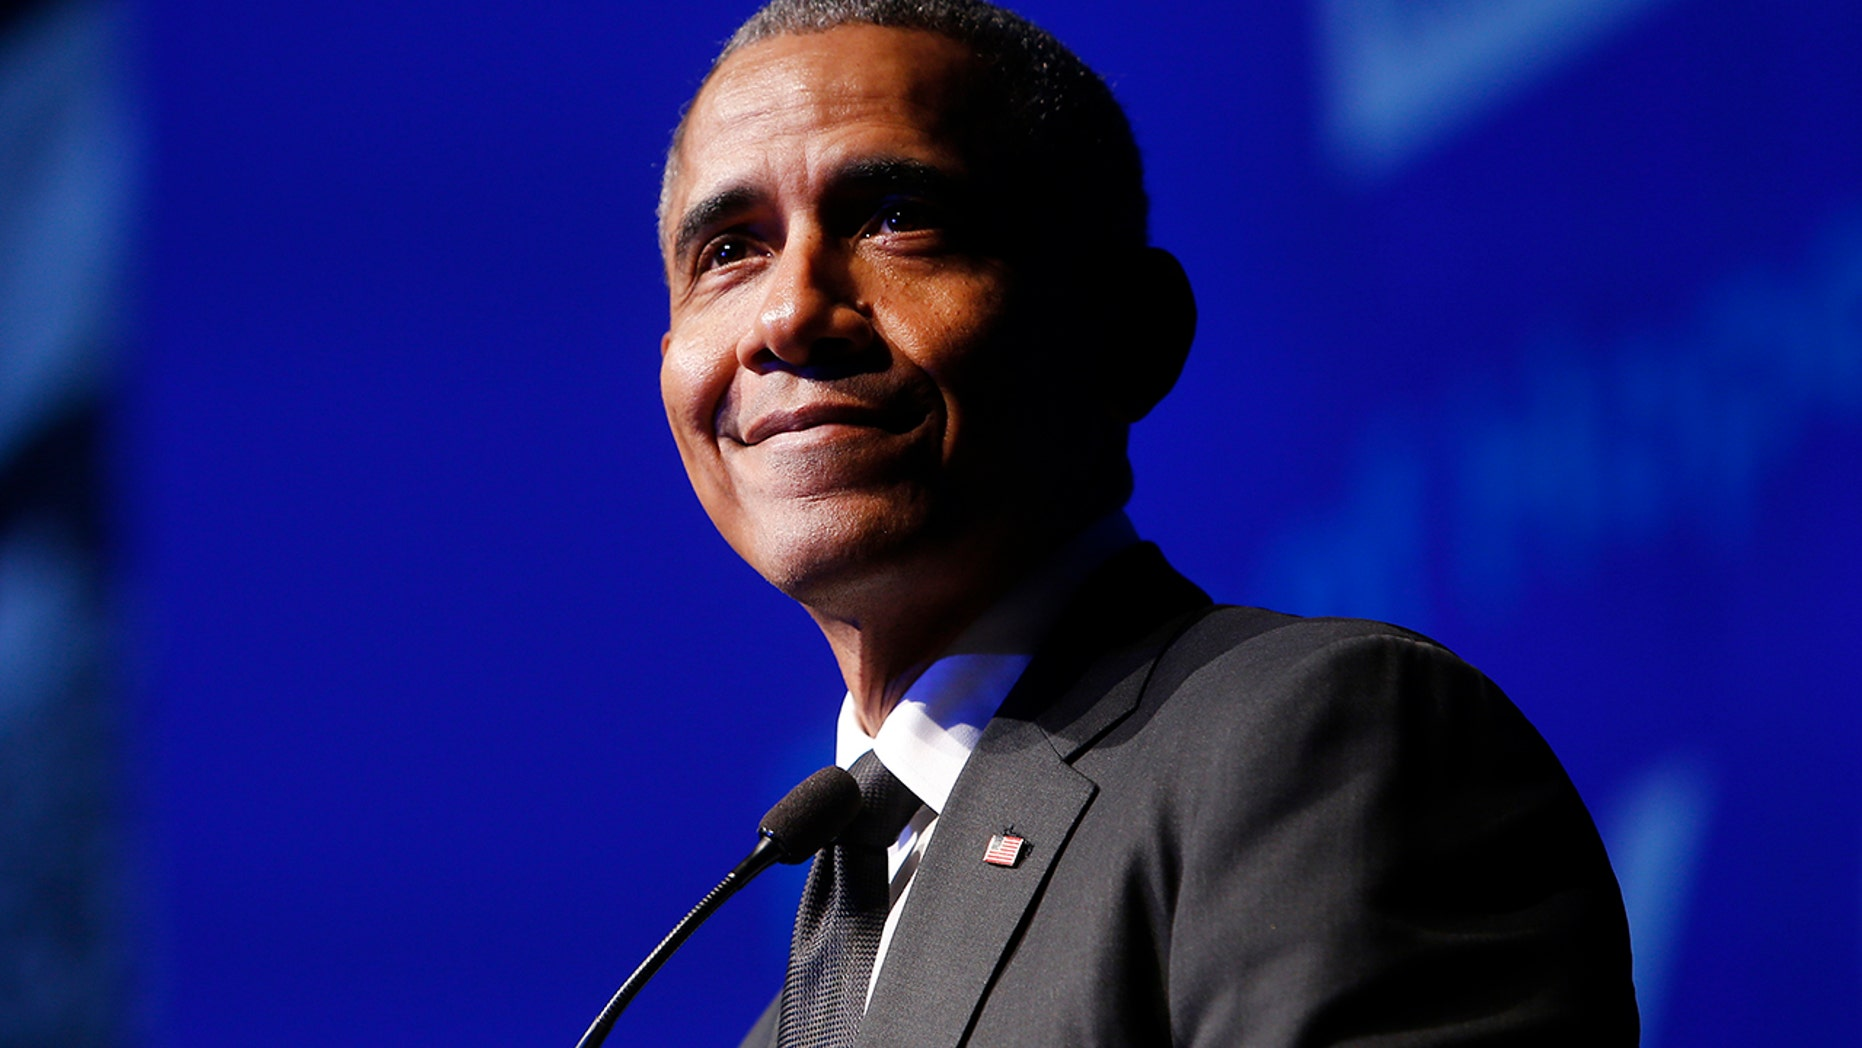 Obama Ended Up On The Billboard Hot R&B Songs Chart